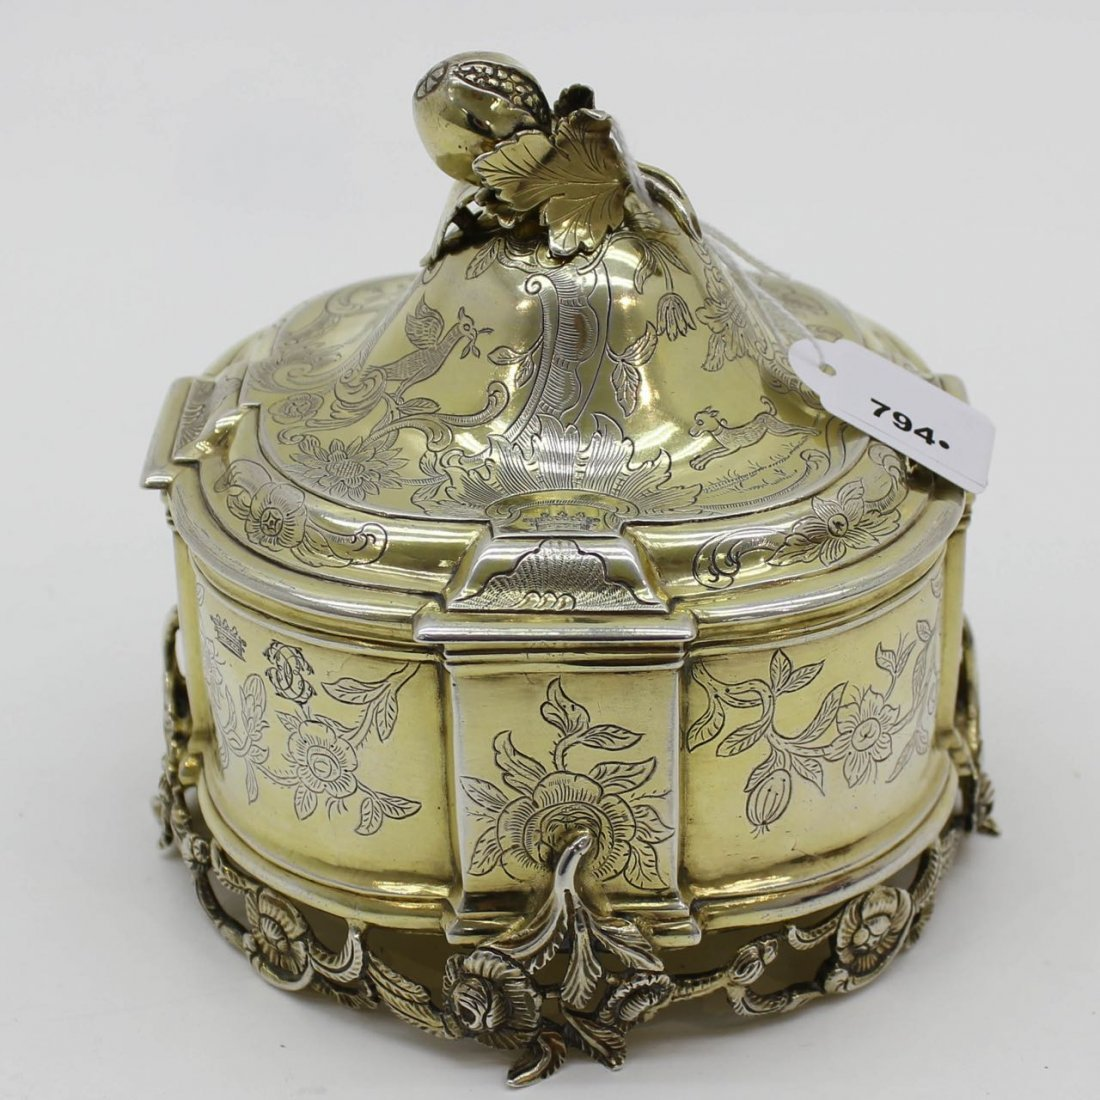 A Fine 18th Century Dutch Silver Tobacco Pot